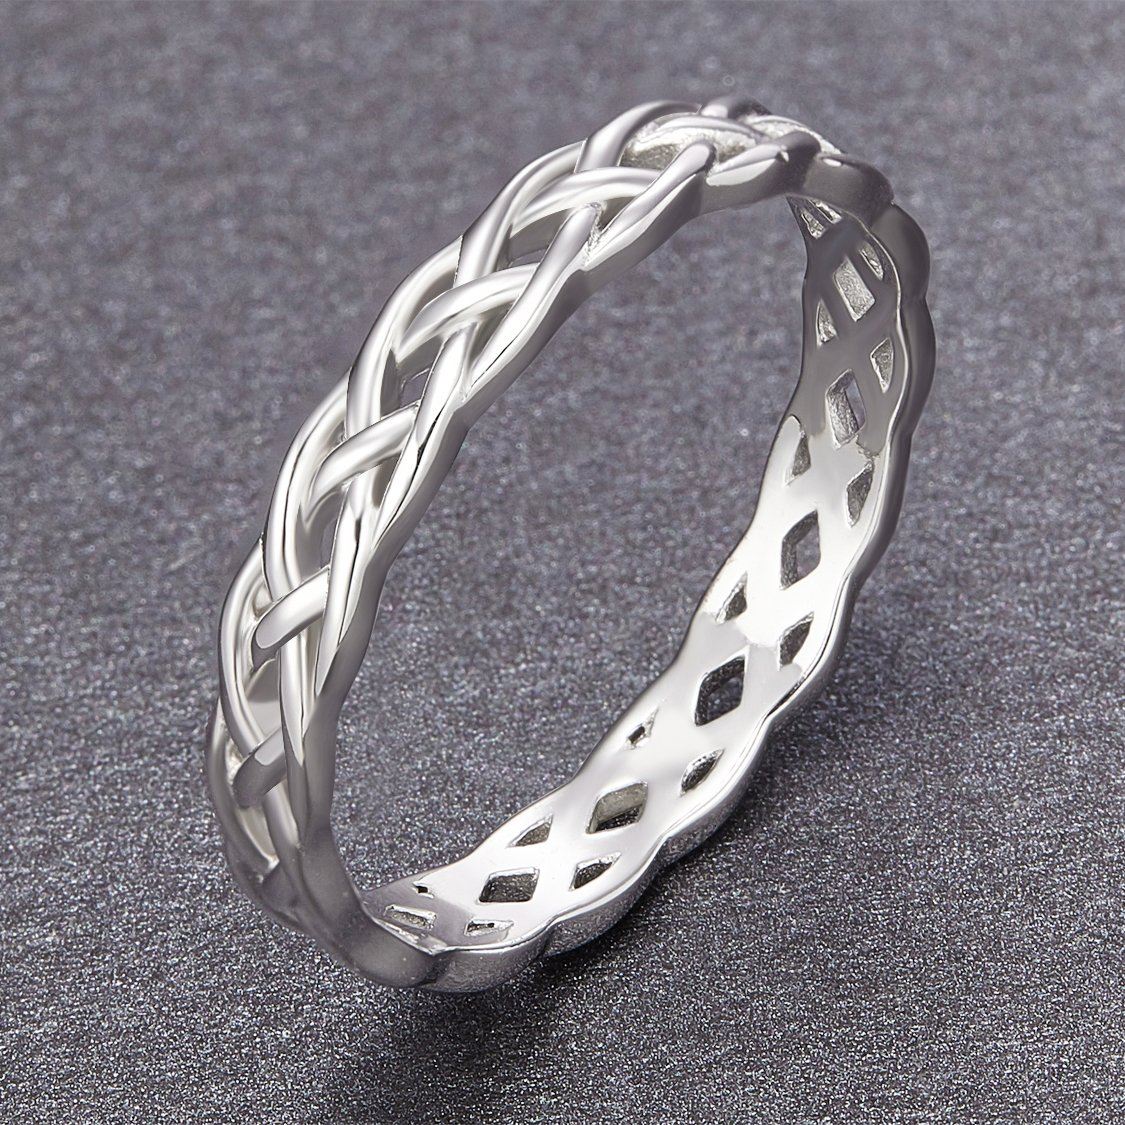 SOMEN TUNGSTEN 925 Sterling Silver Ring 4mm Eternity Knot Wedding Band for Women Size 7.5 by SOMEN TUNGSTEN (Image #3)